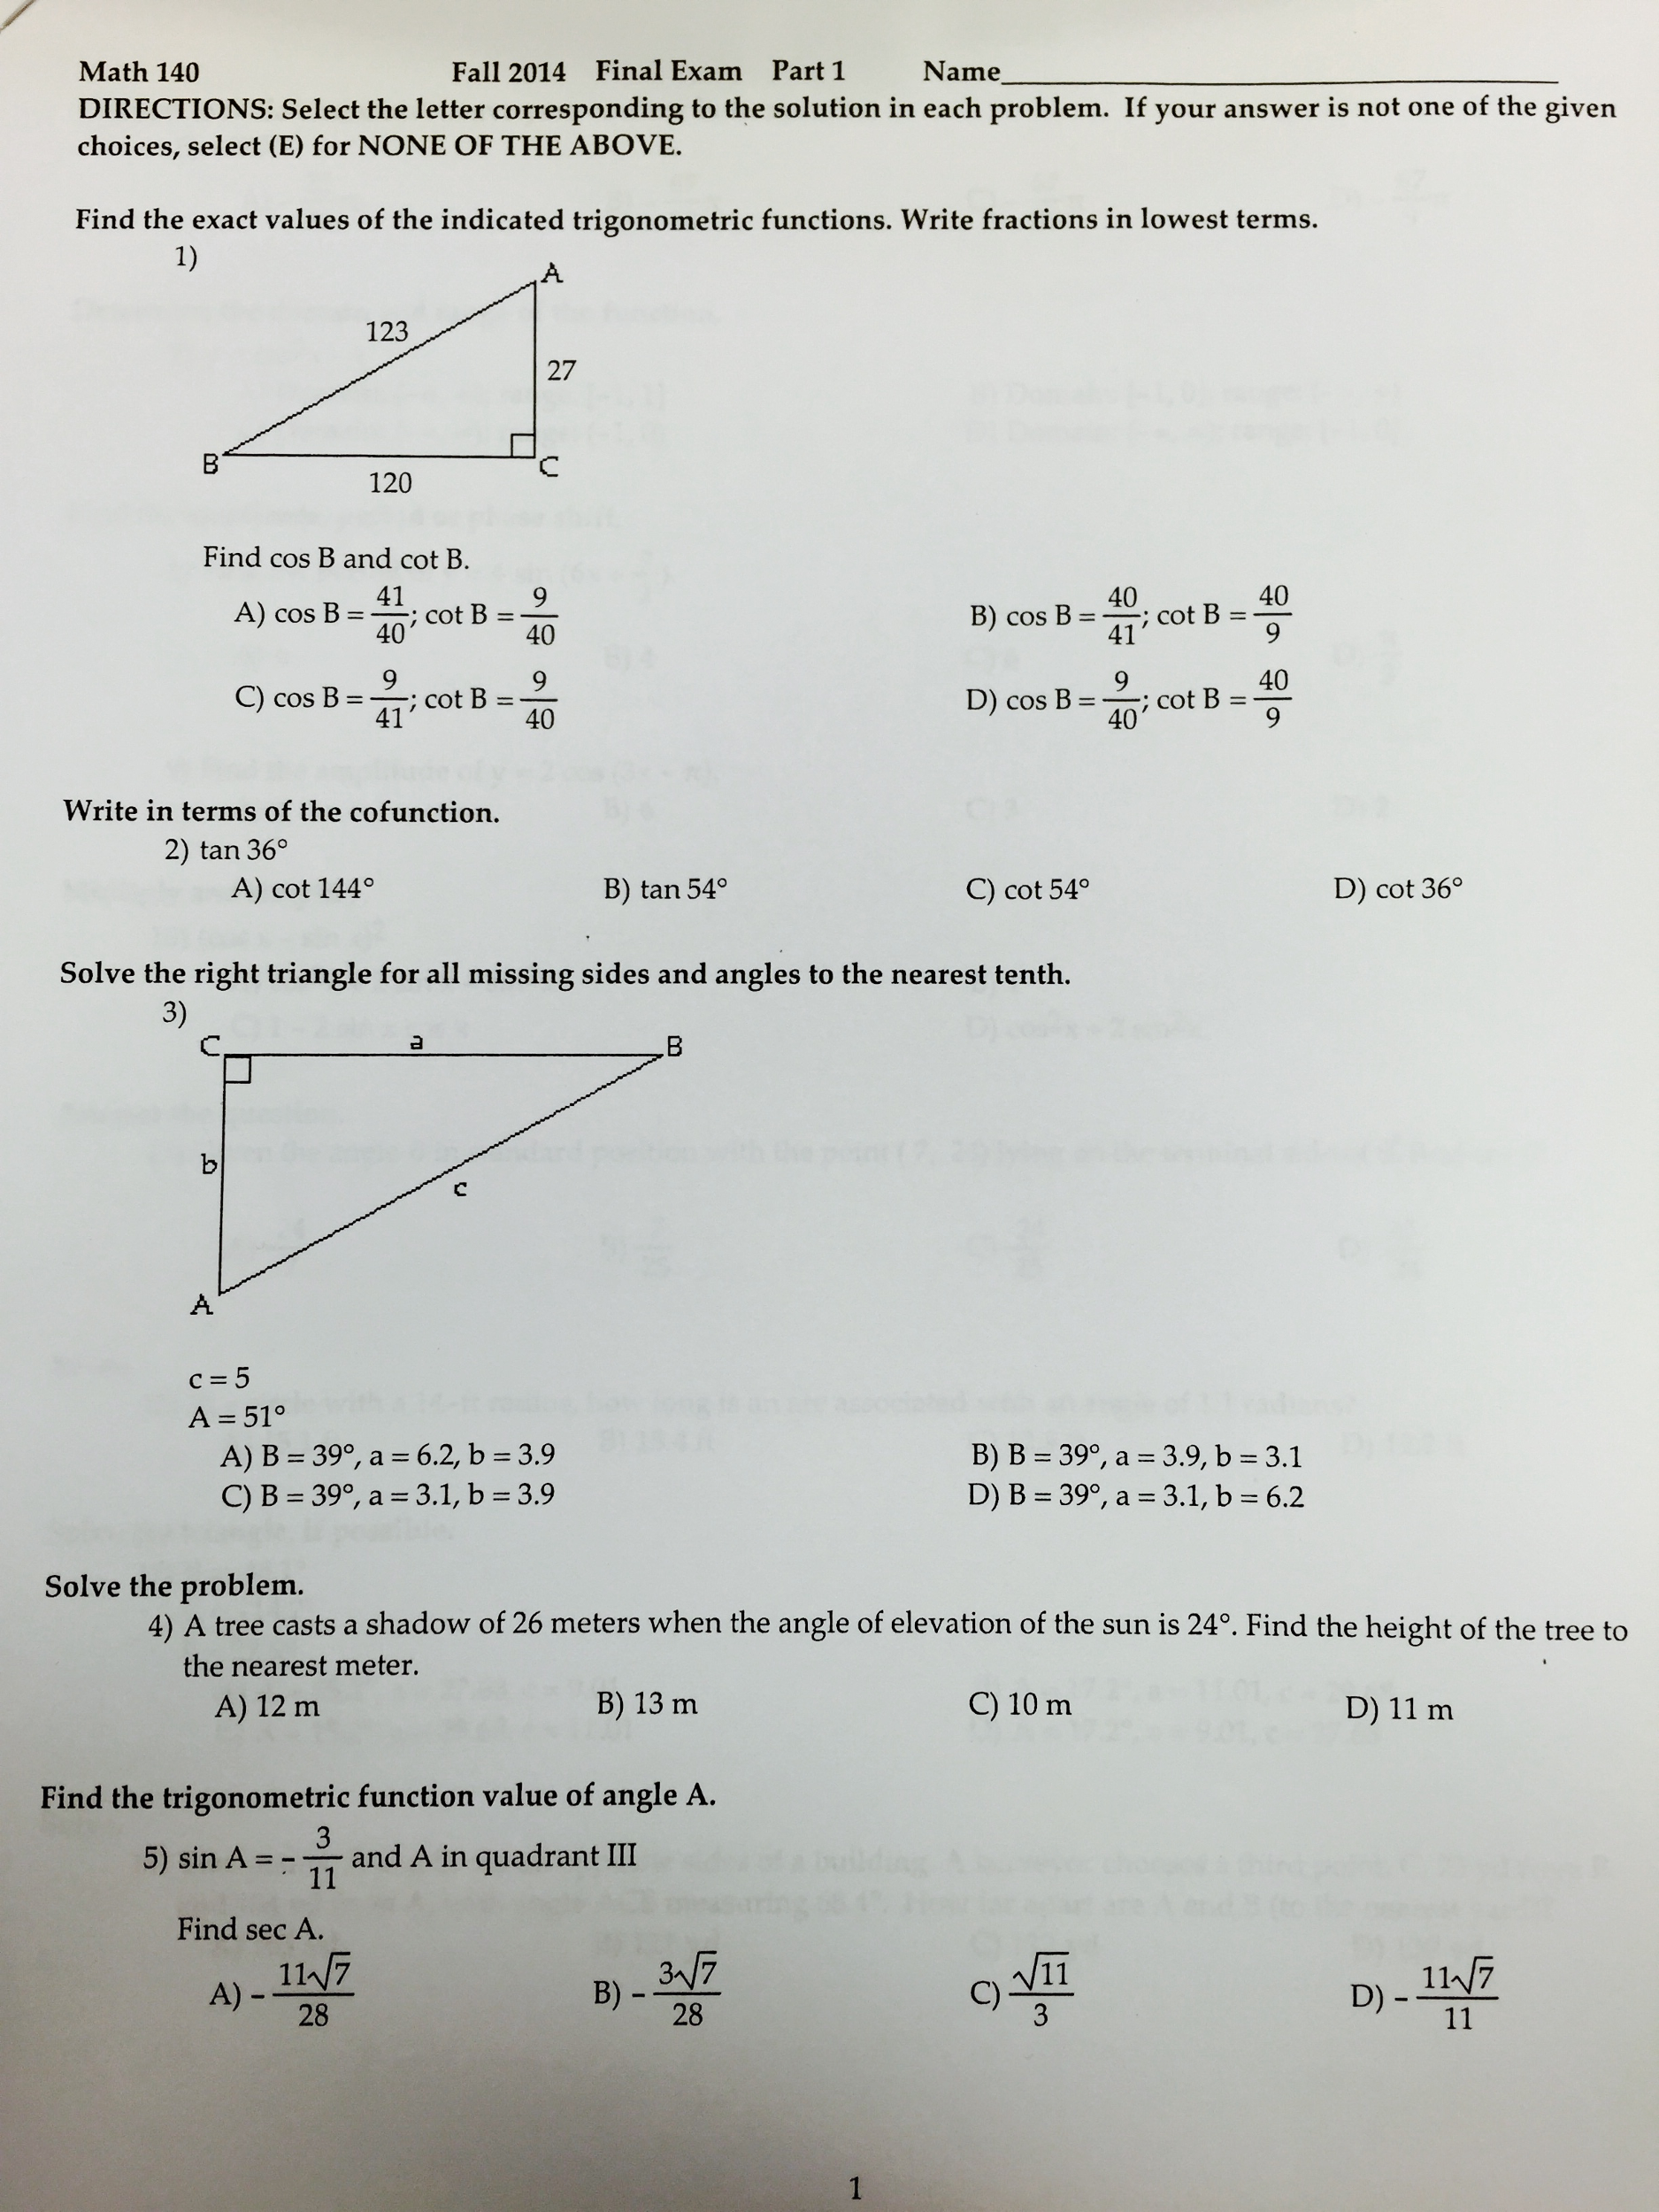 Solved: I NEED HELP WITH MY MATH TEST, I MAINLY NEED TO PR ...